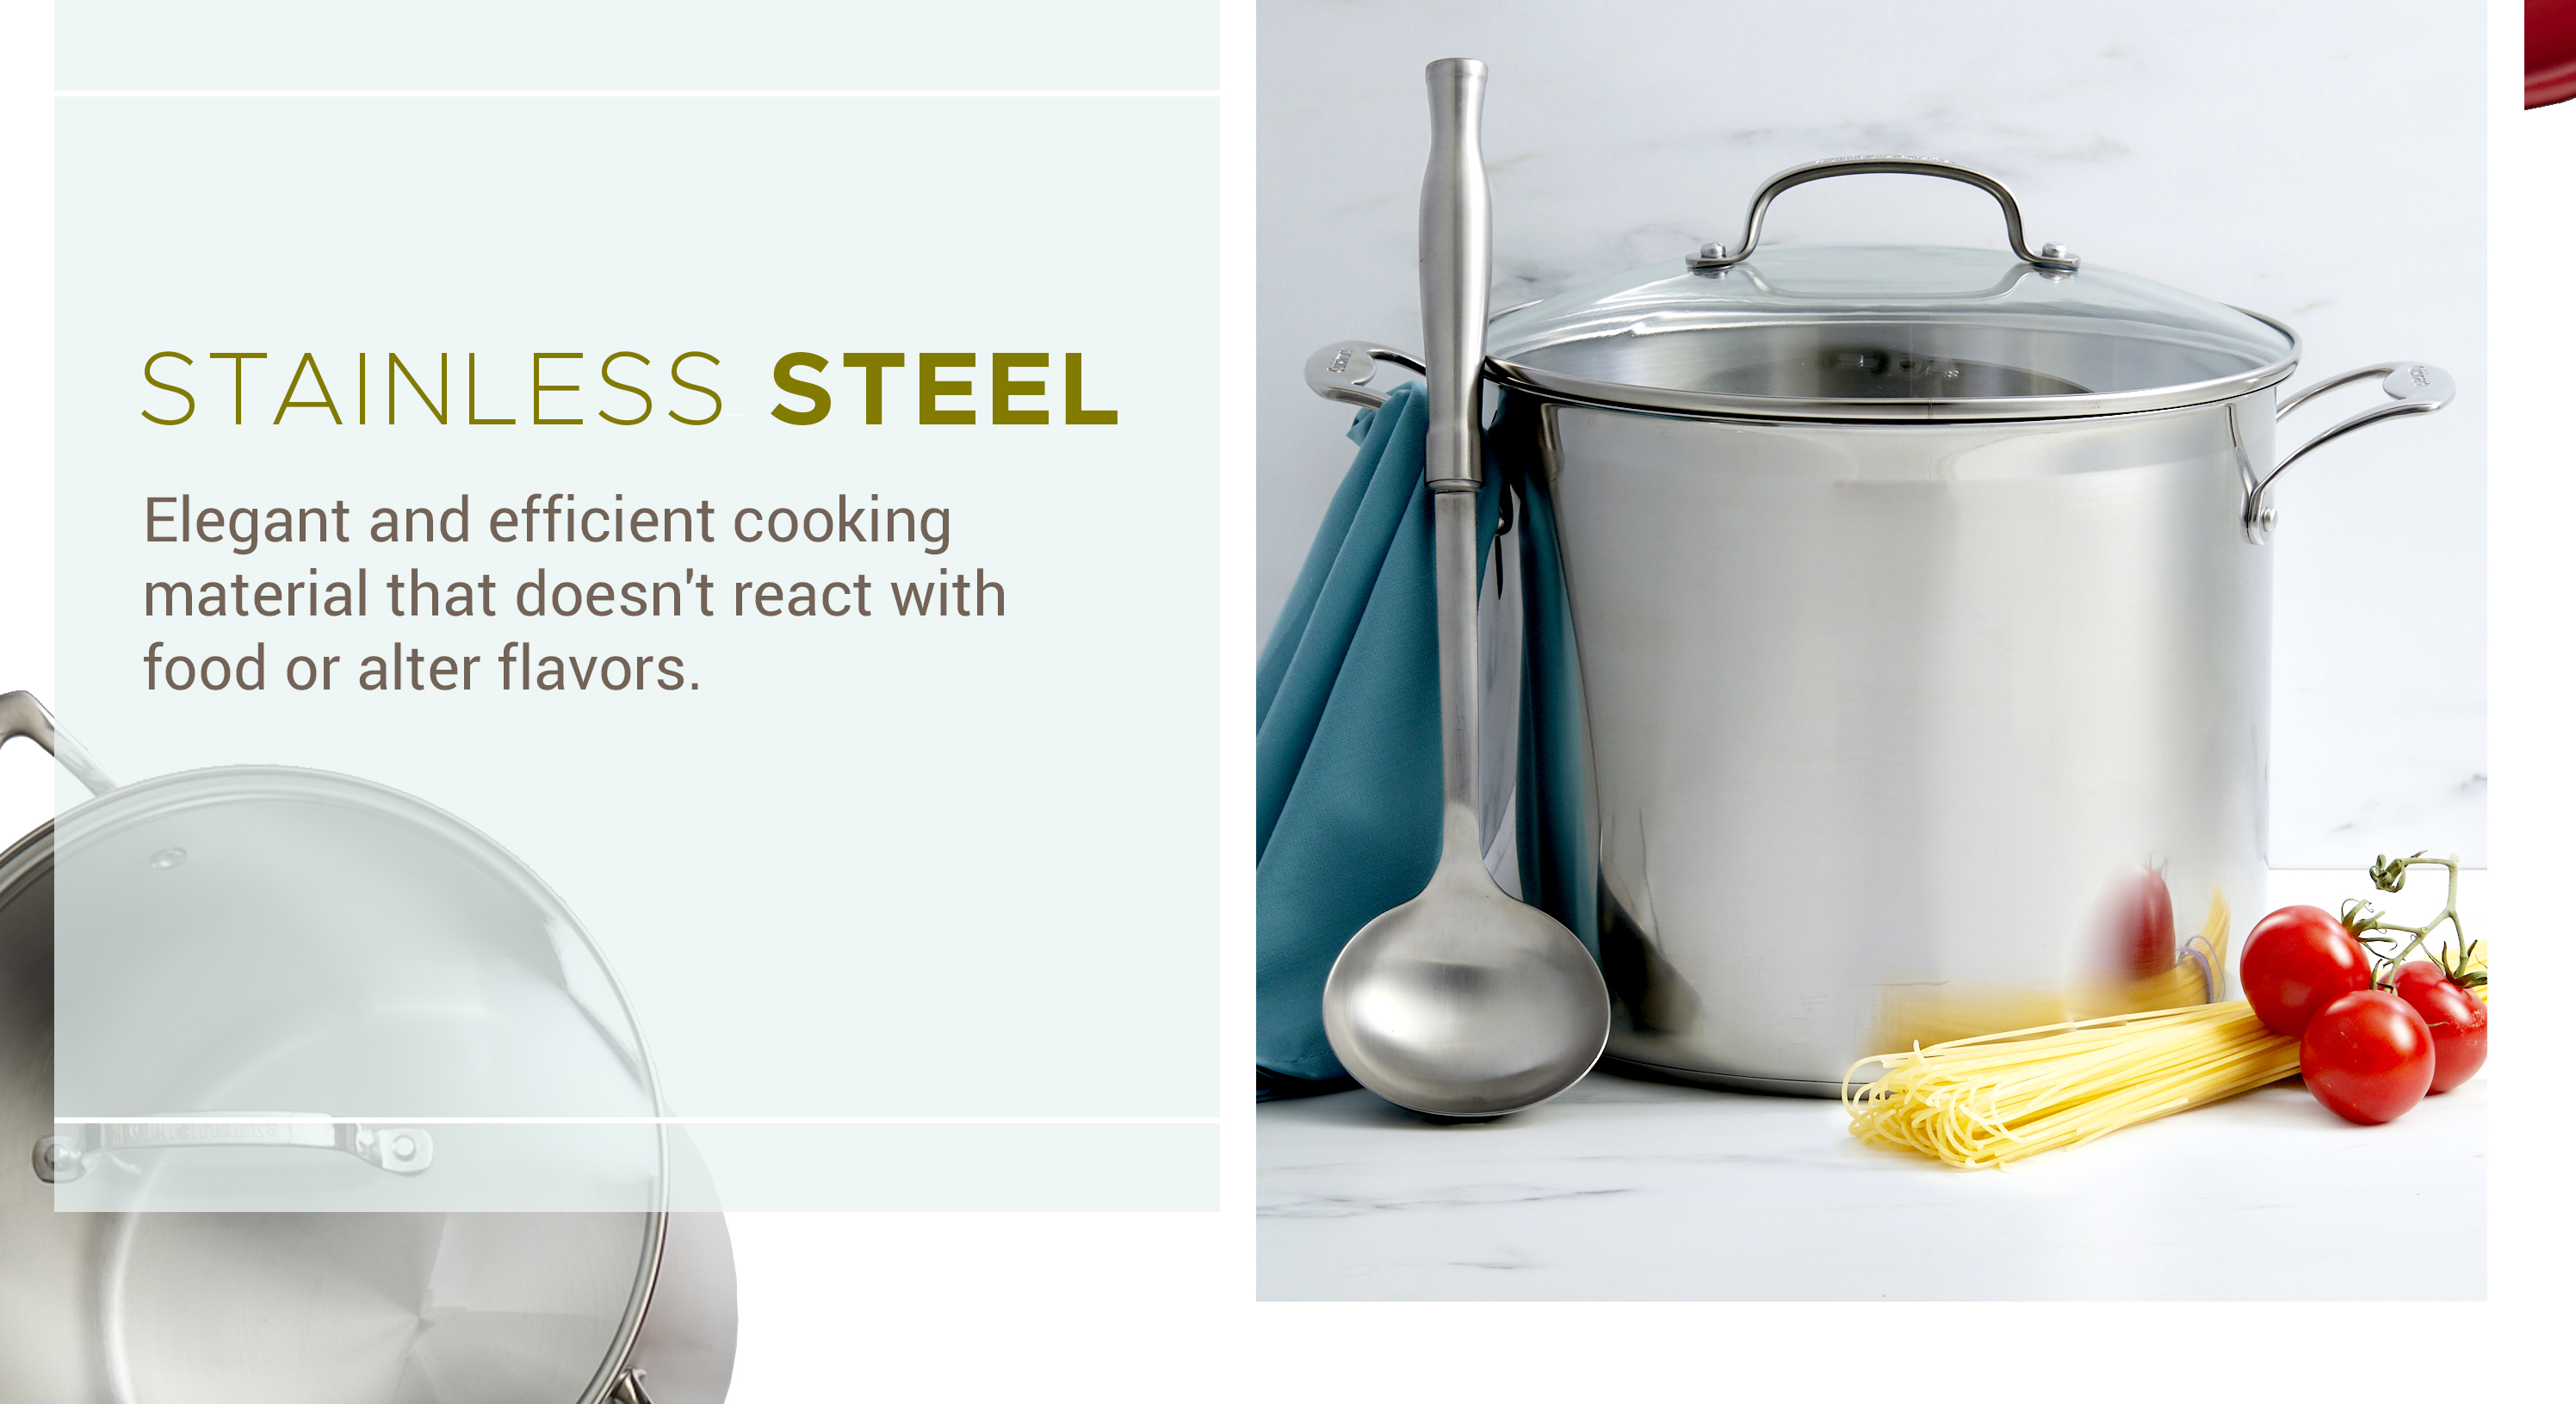 Stainless Steel - Elegant and efficient cooking material that doesn't react with food or alter flavors.